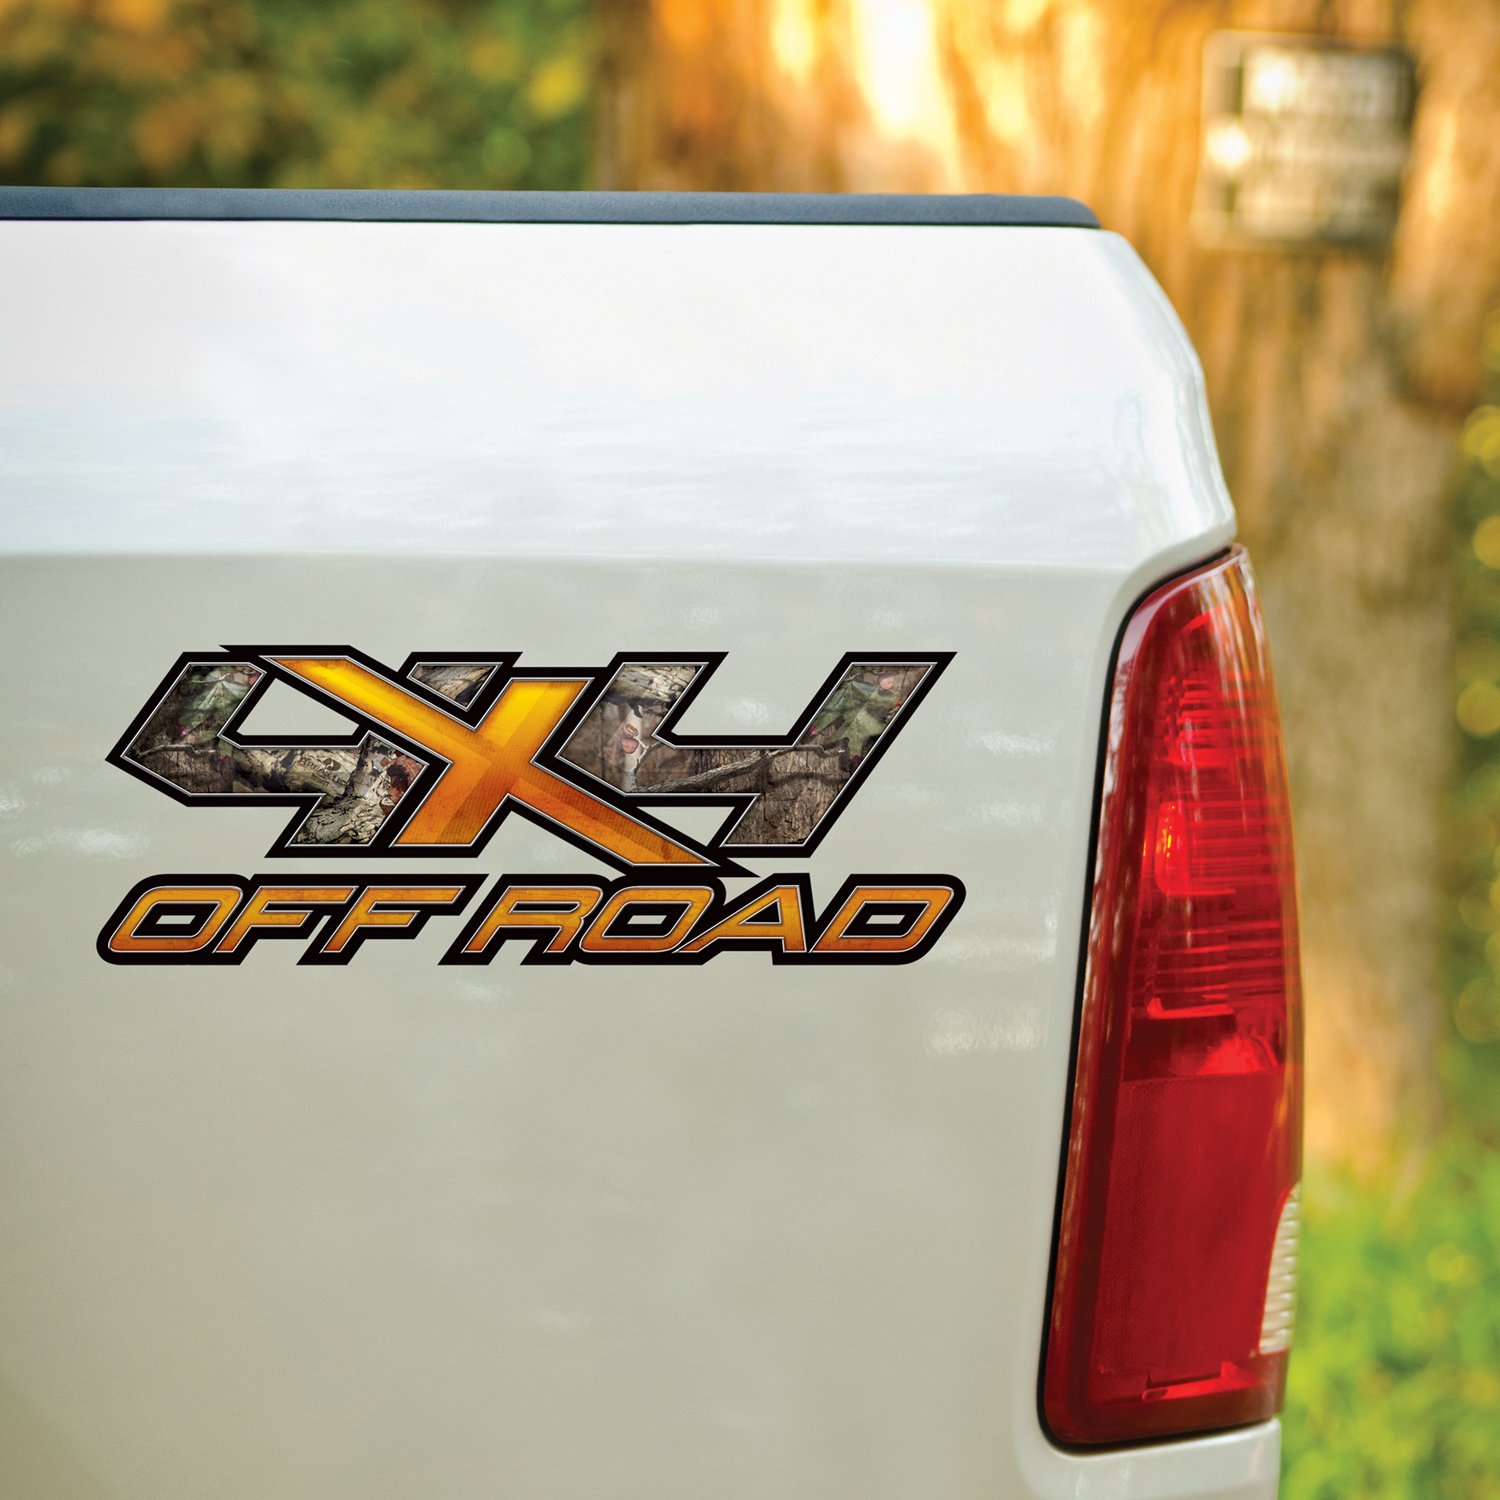 13036-BI-L 17 x 6.5 Break-Up Infinity 4X4 Orange X Style Decal Mossy Oak Graphics